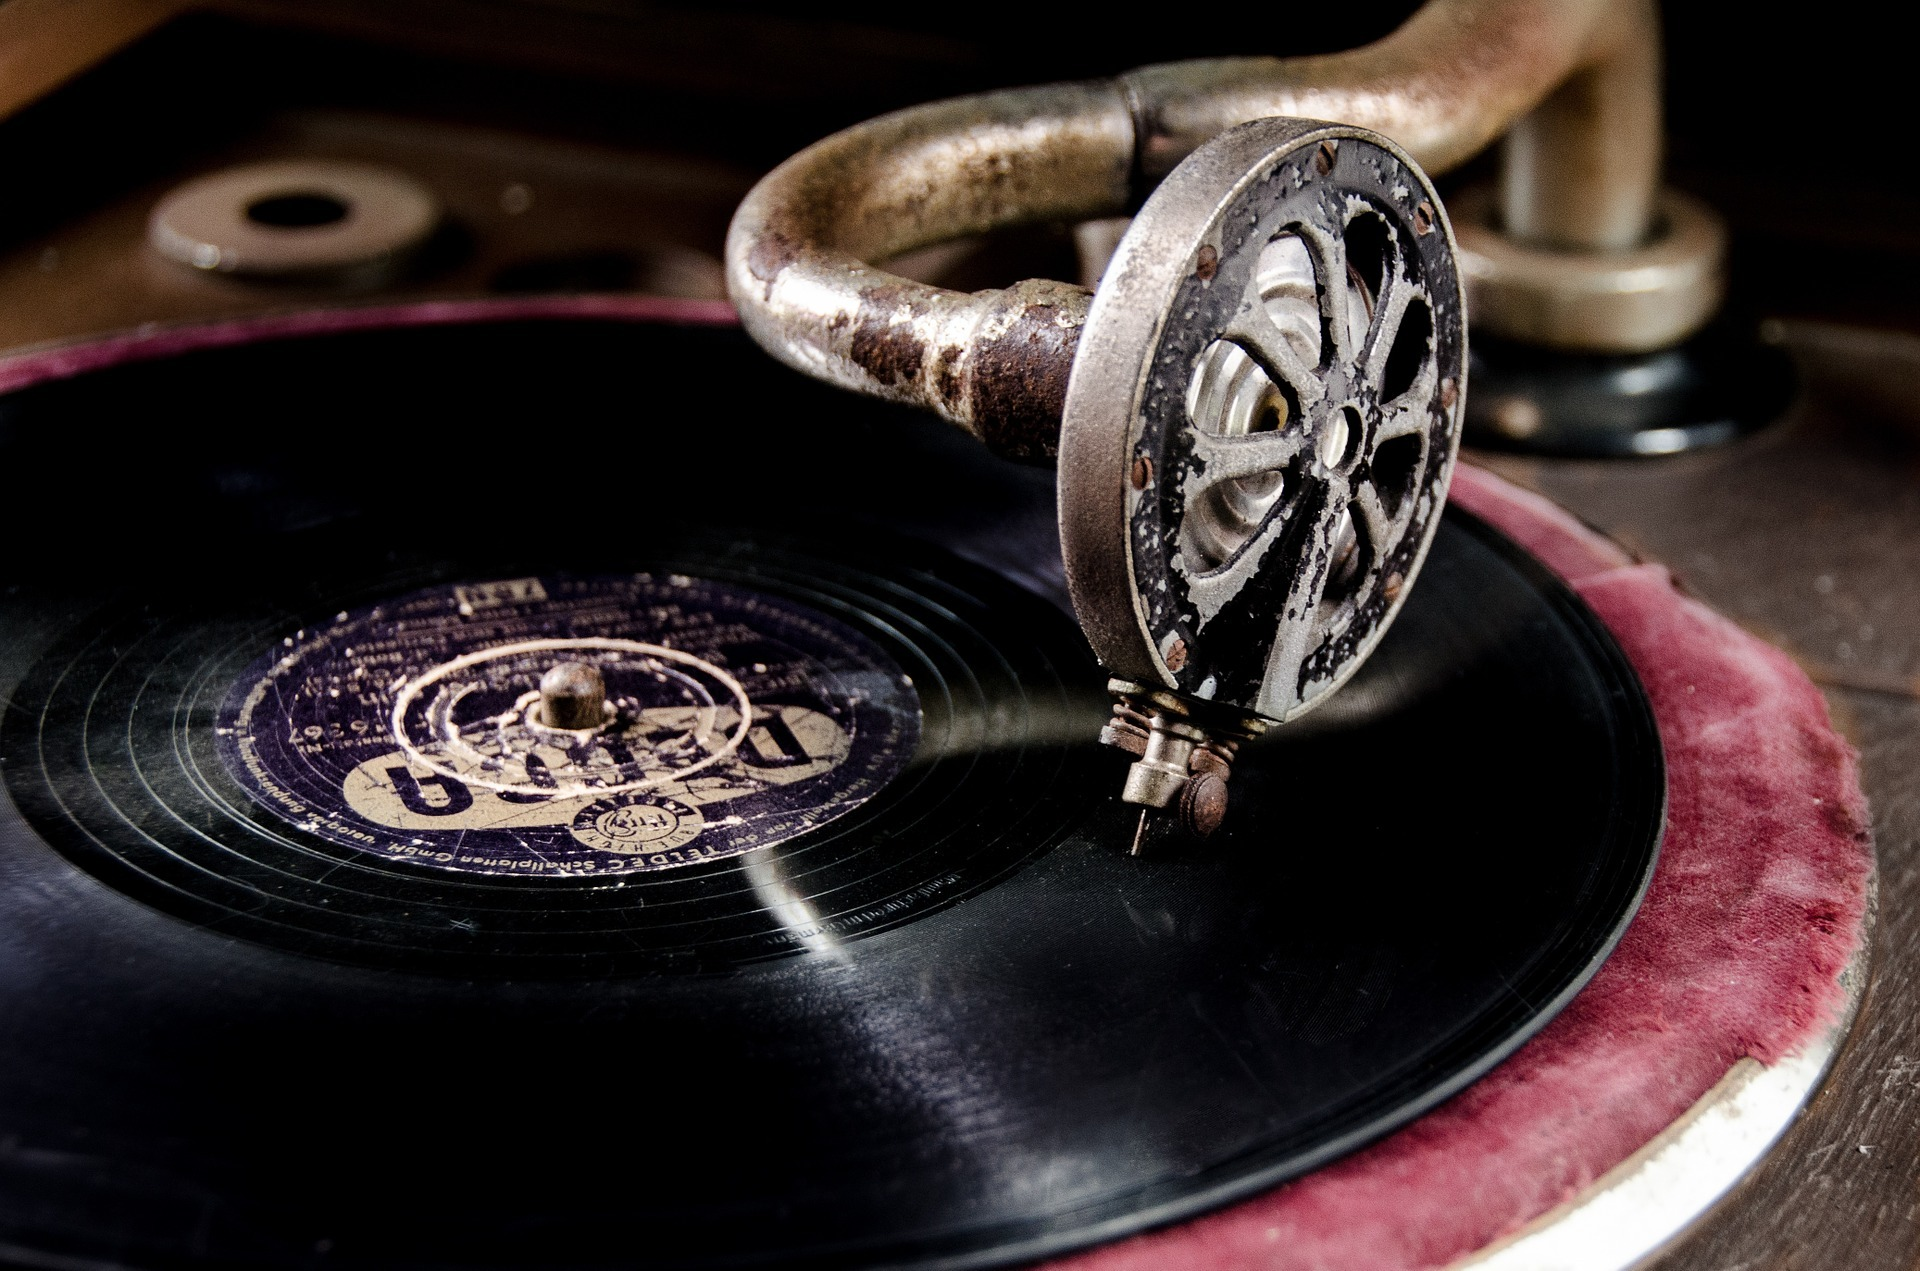 Know More about The Serial Numbers in Vinyl Records